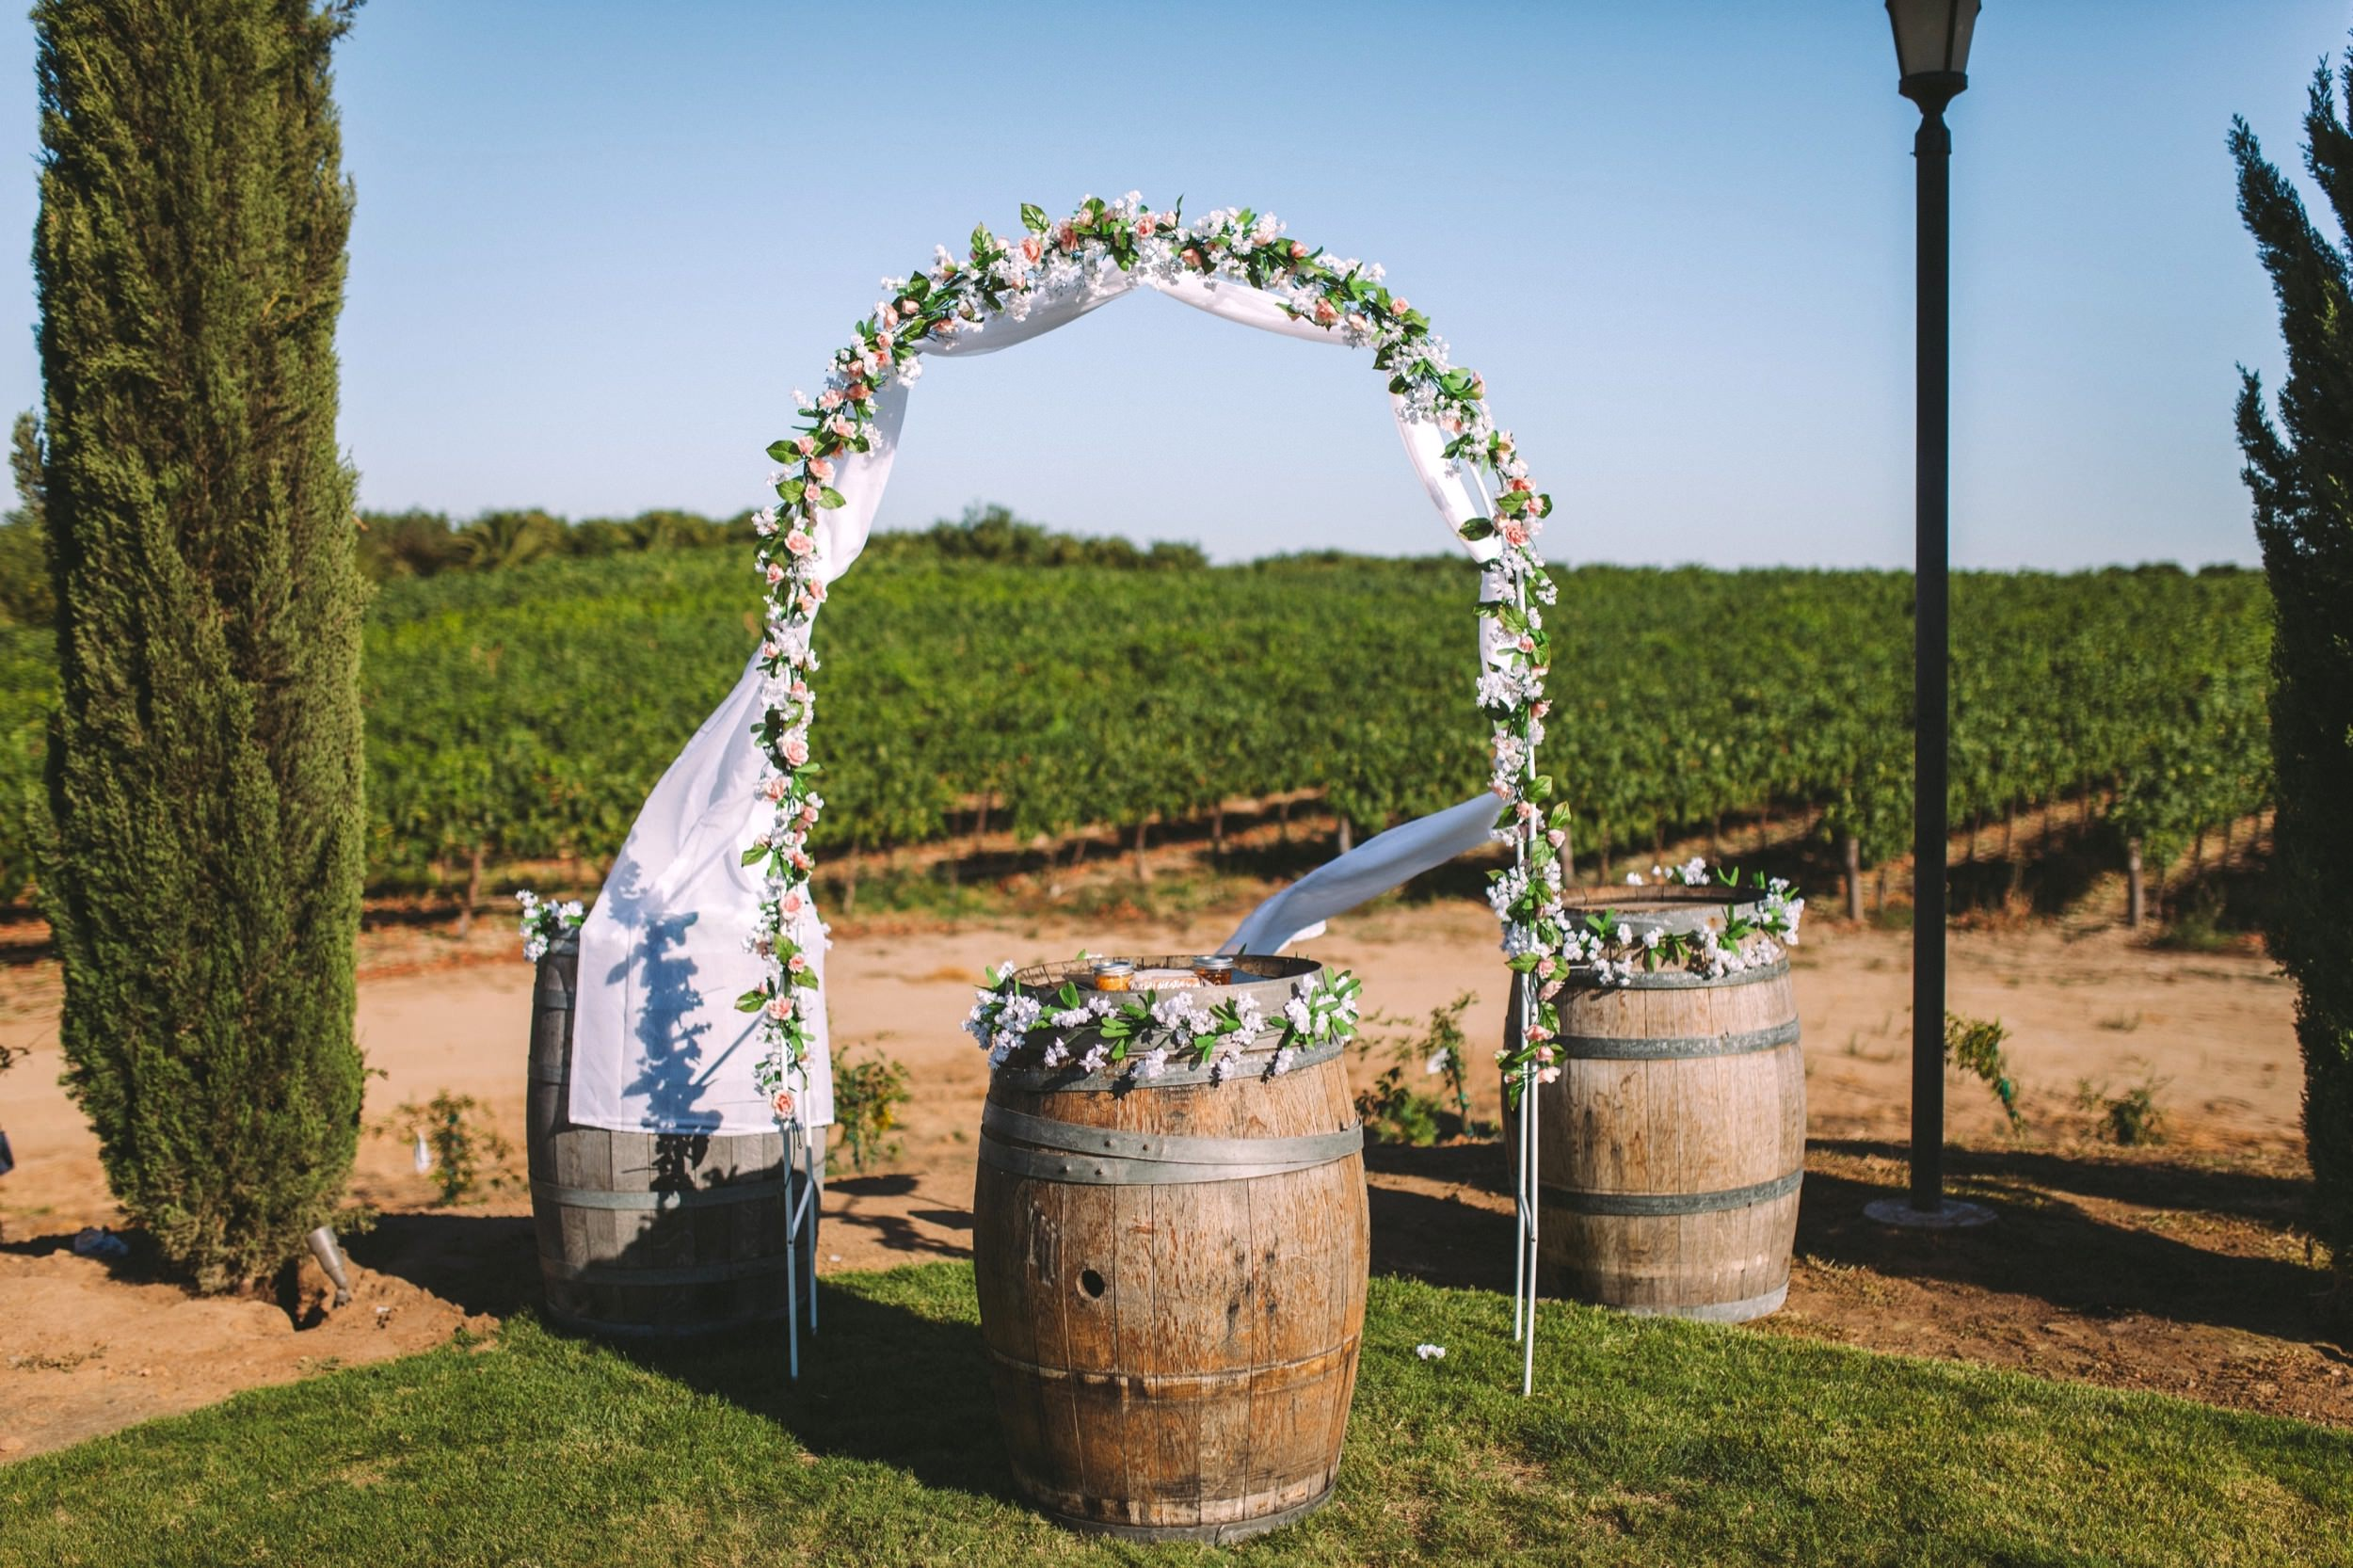 Toca Madera Winery Vineyard Wedding Flower Archway & Wine Barrels Outdoor Ceremony